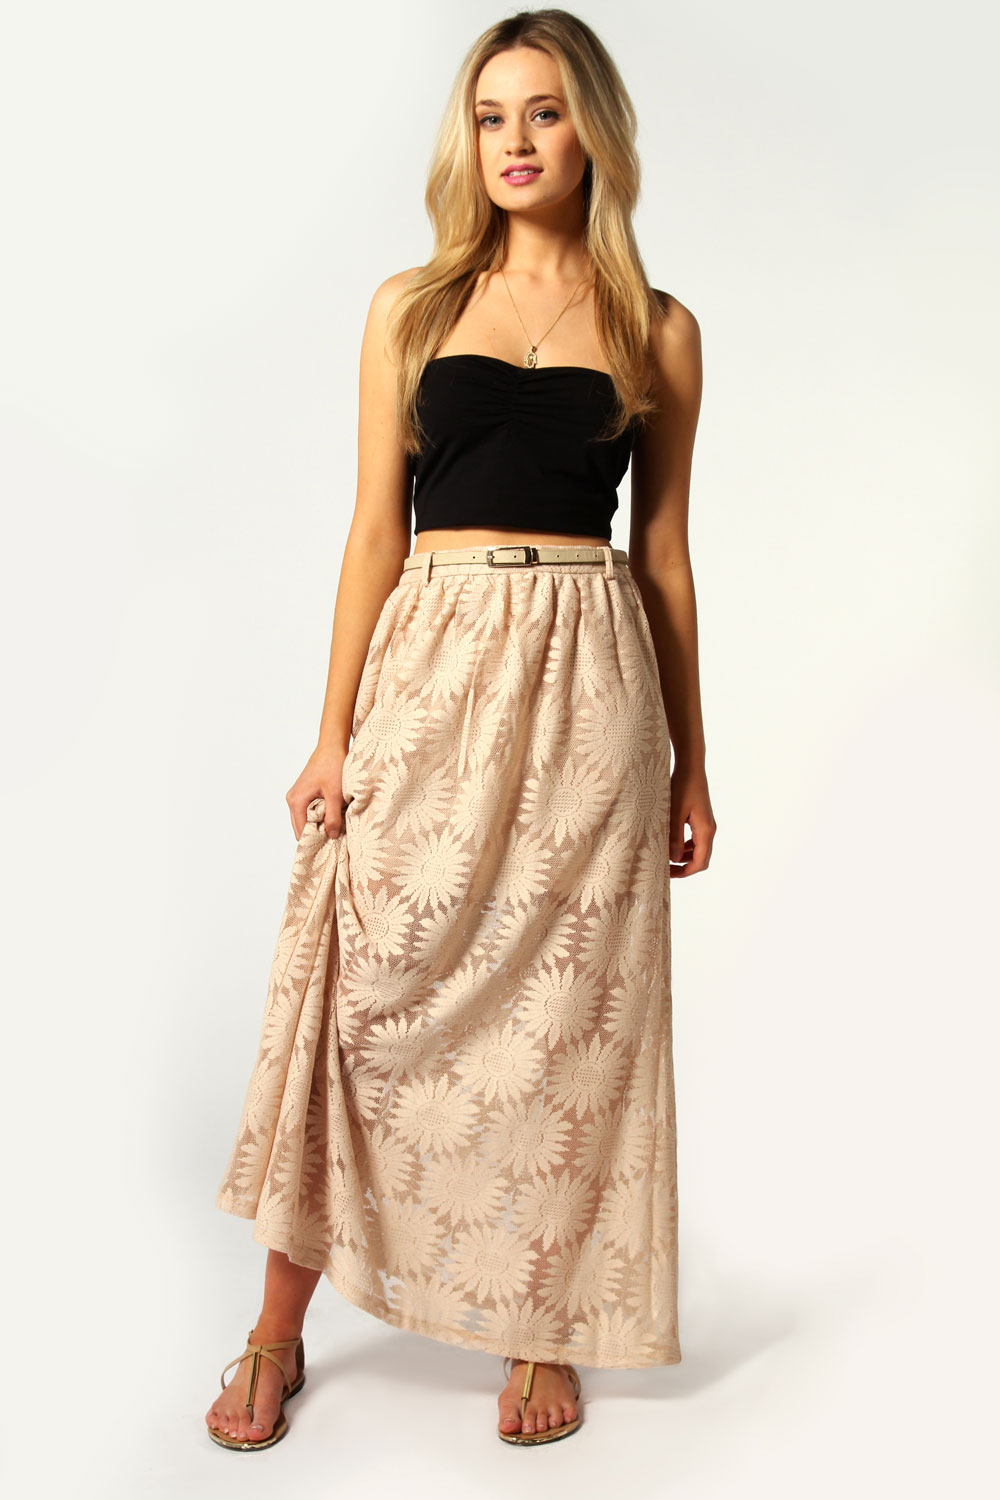 Heavy laced skirt trailered by next size Heavy black lace on top of a cream lining,is a line style knee length with back split and back 440v.cf excellent condition.